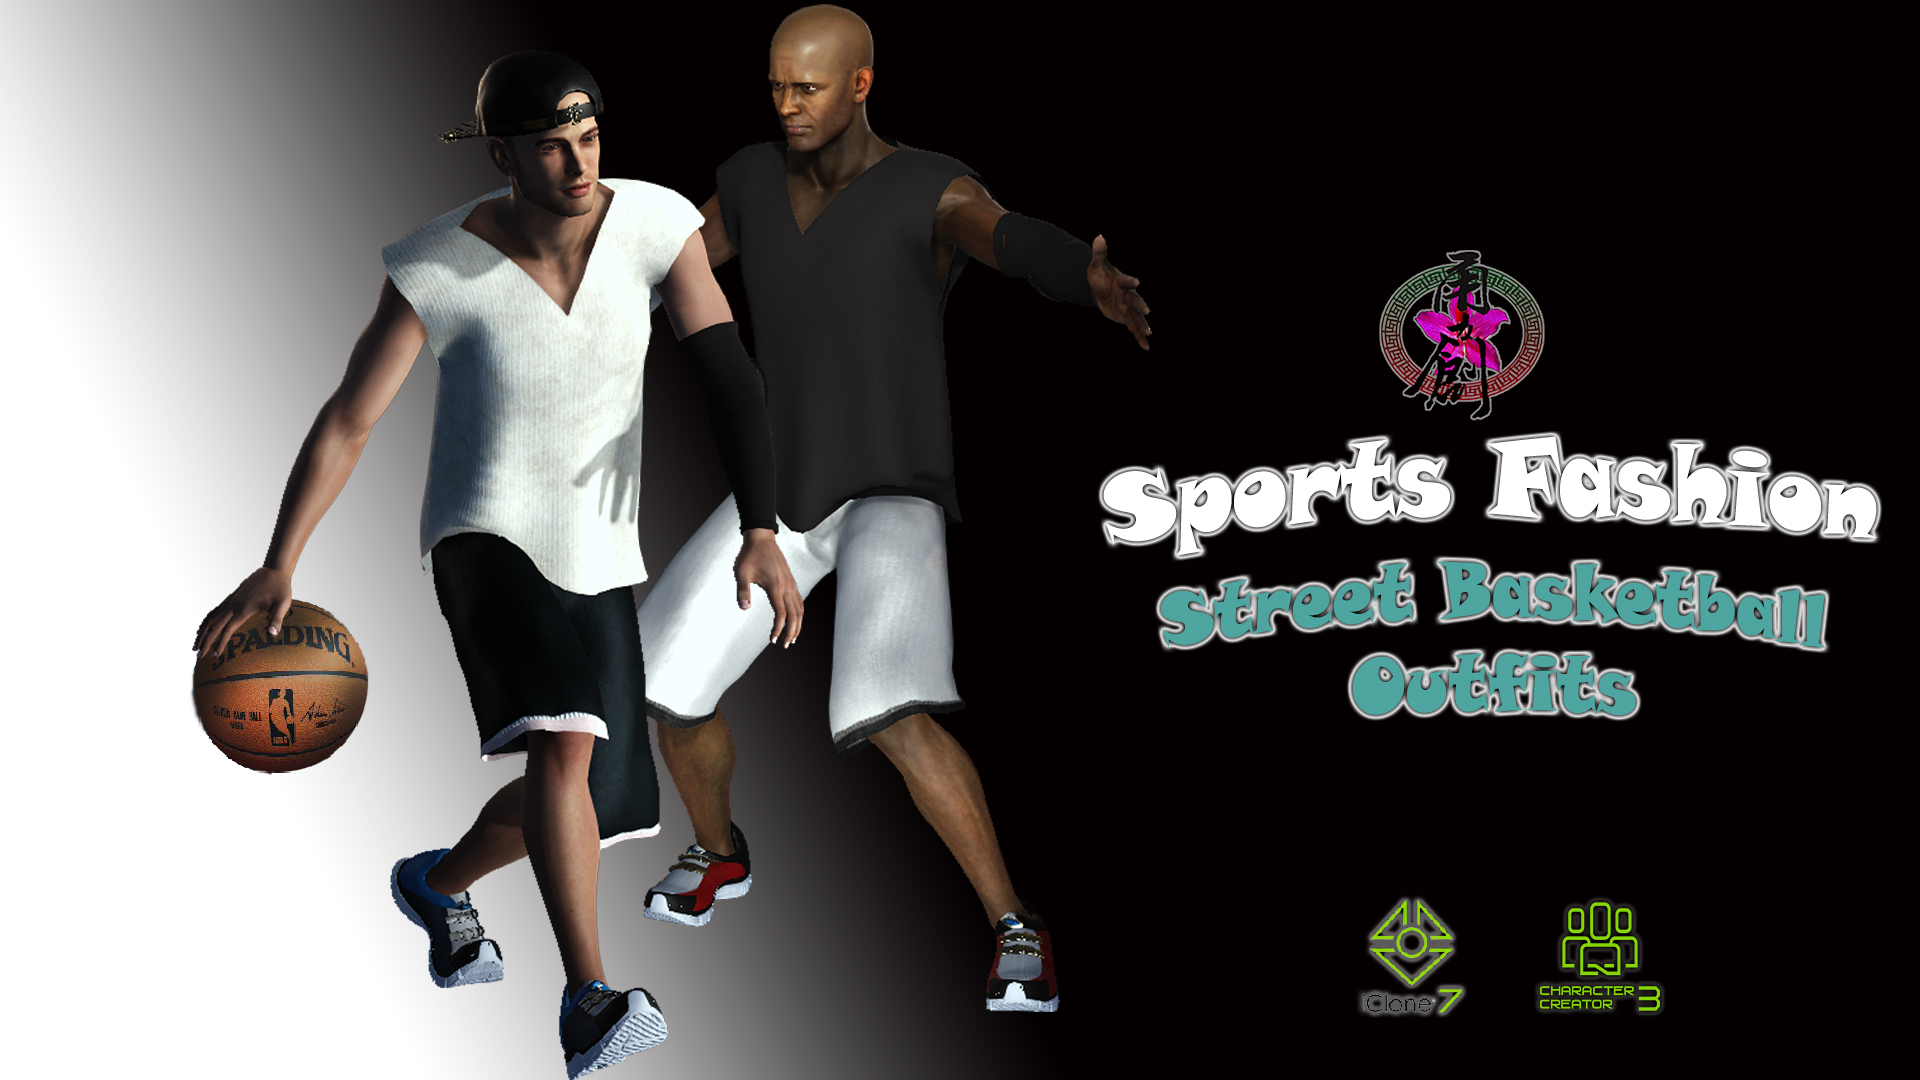 Sports Fashion - Street Basketball Outfits